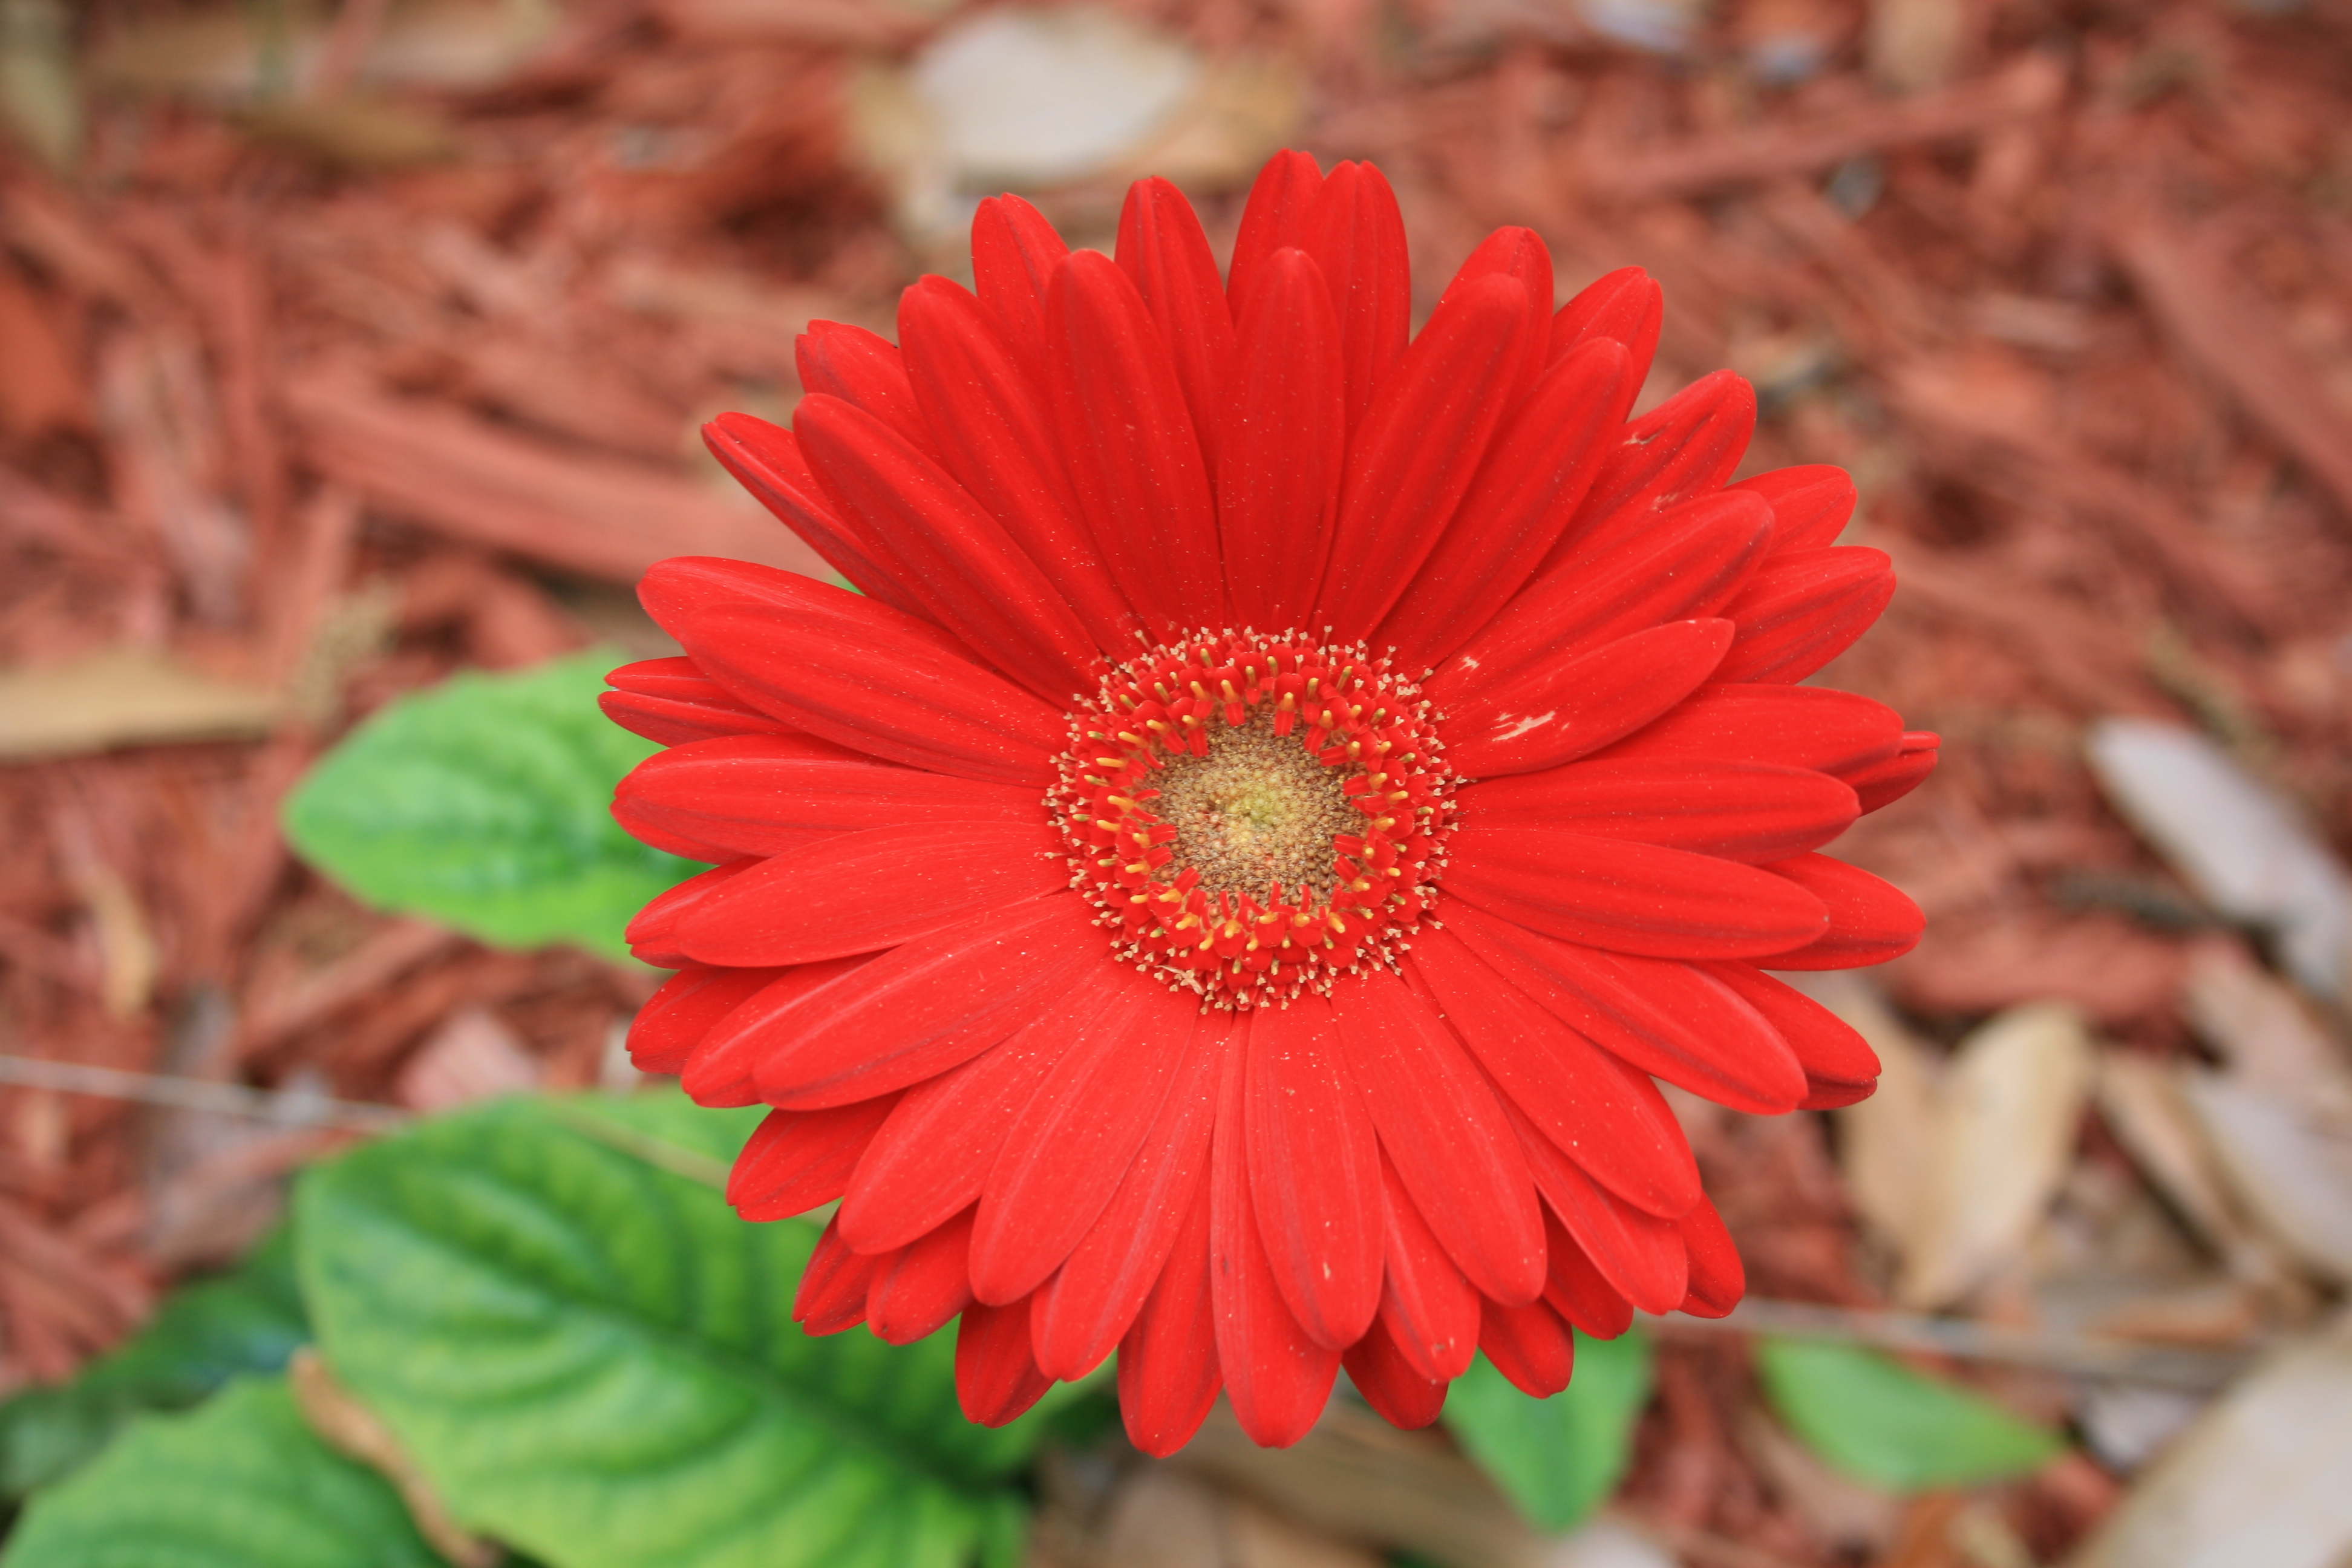 Description Gerbera Daisy Flower Digon3.JPG